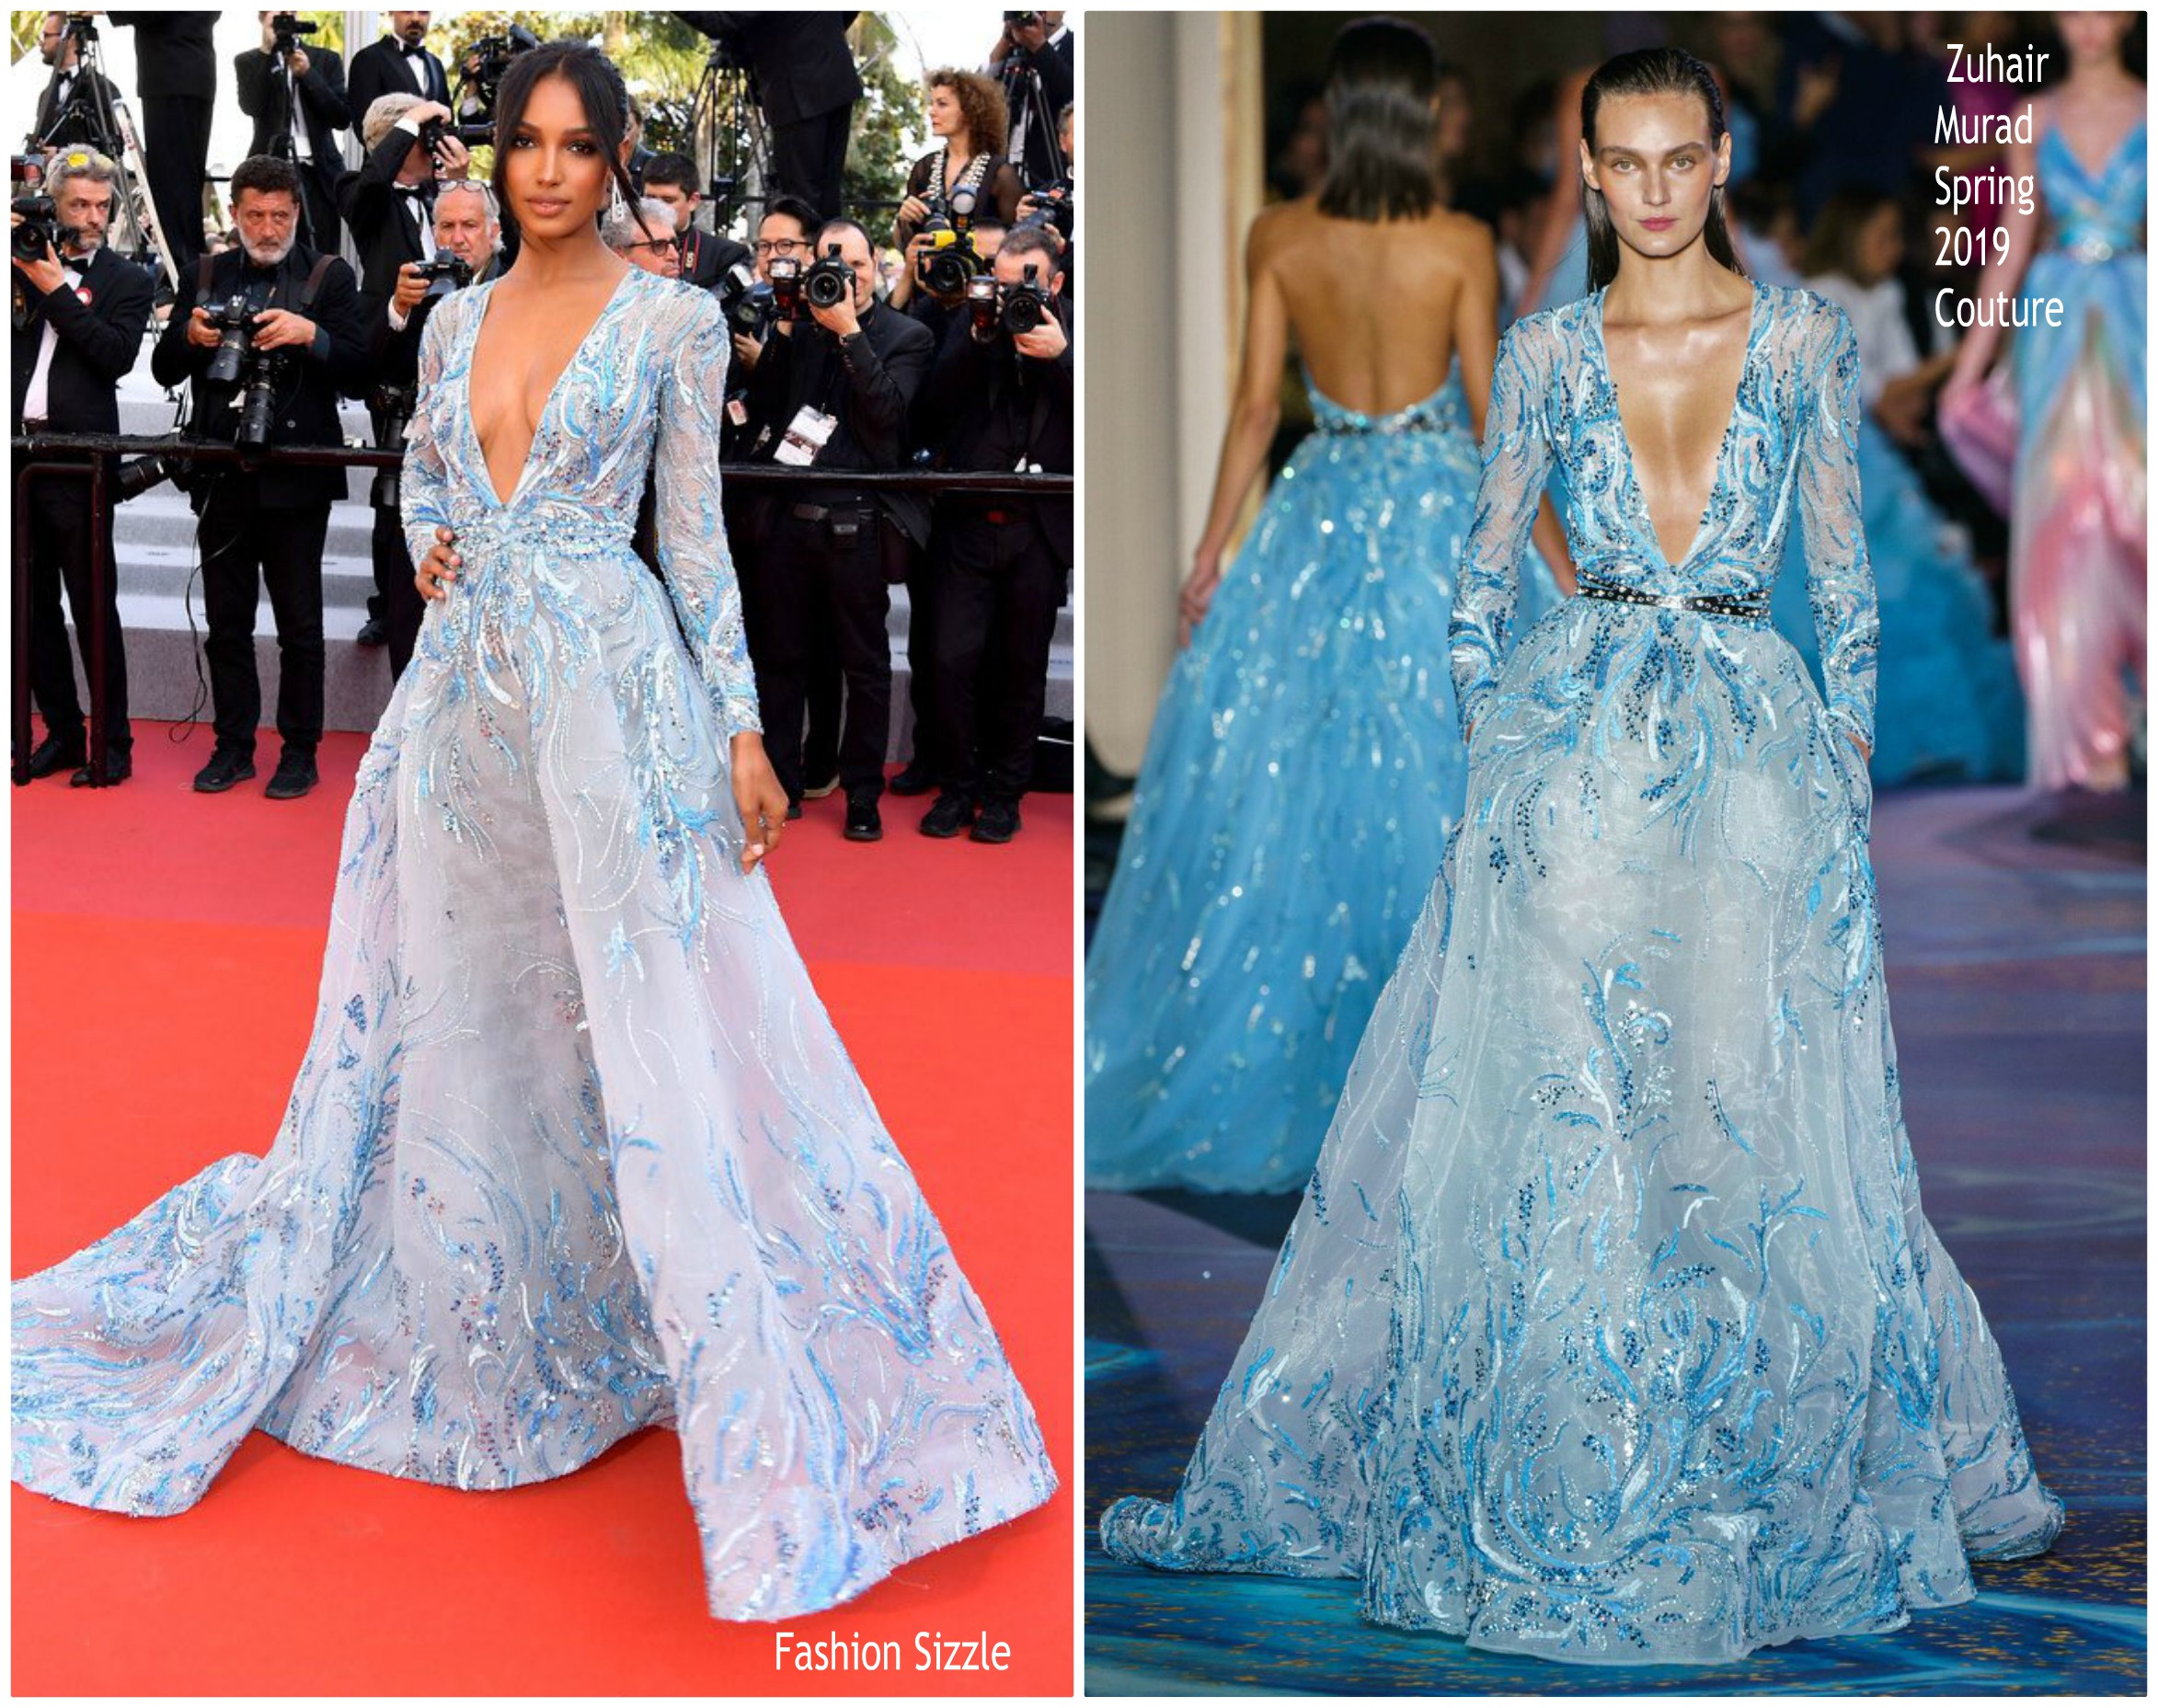 jasmine-tookes-in-zuhair-murad-couture-traitor-cannes-film-festival-premiere